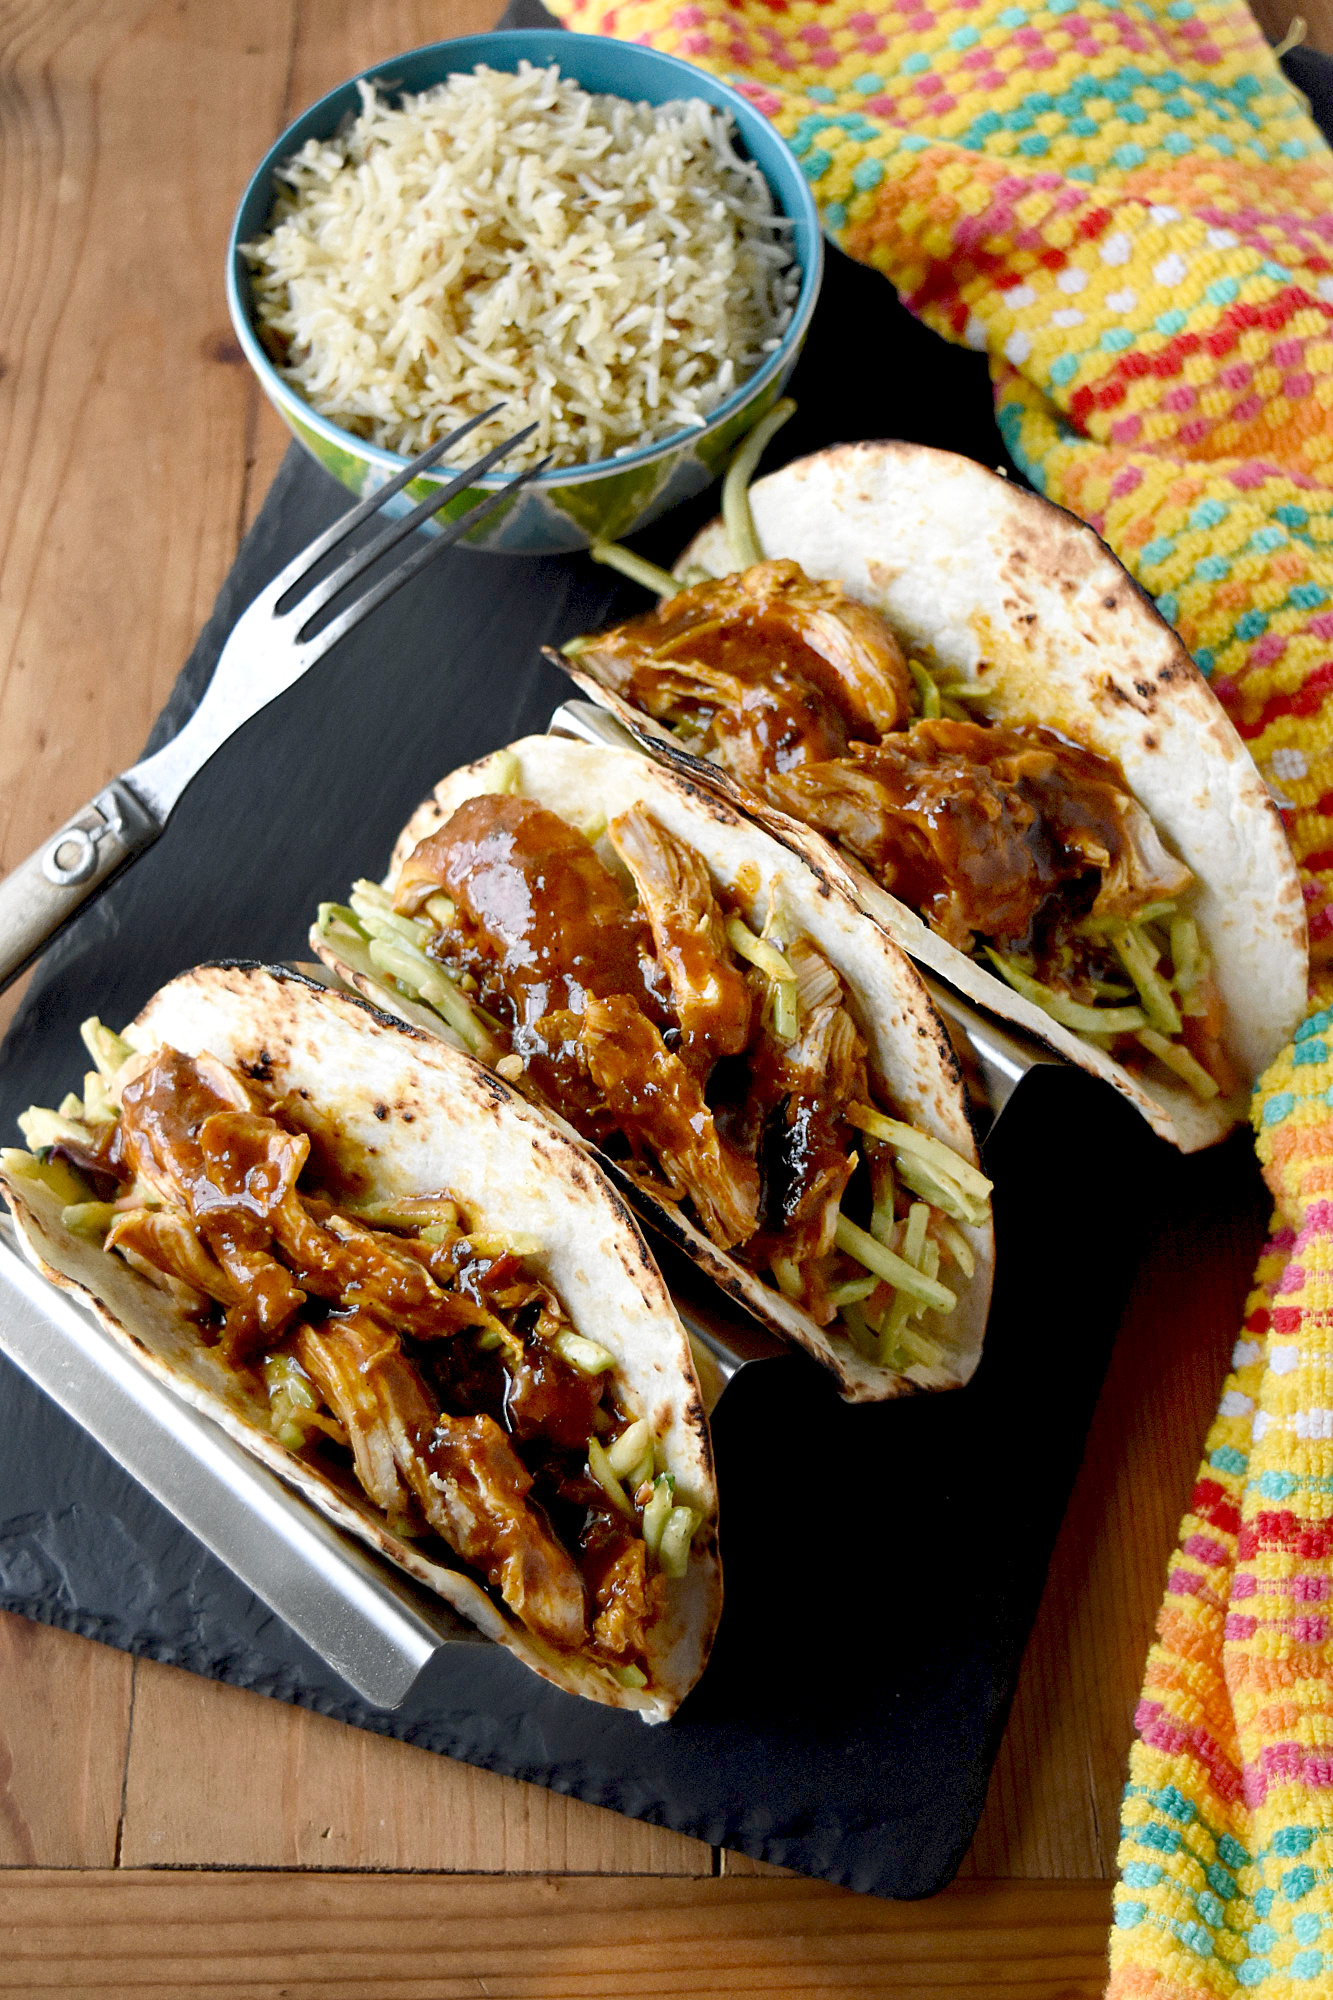 Chicken Tikka Masala Tacos taste amazing for a meal made in under 30 minutes. The chicken simmers in delicious tikka masala sauce and the slaw has extra crunch from the broccoli and peanuts.  #eatcleanlivehappy #kevinsnaturalfoods #kevinsrecipechallenge